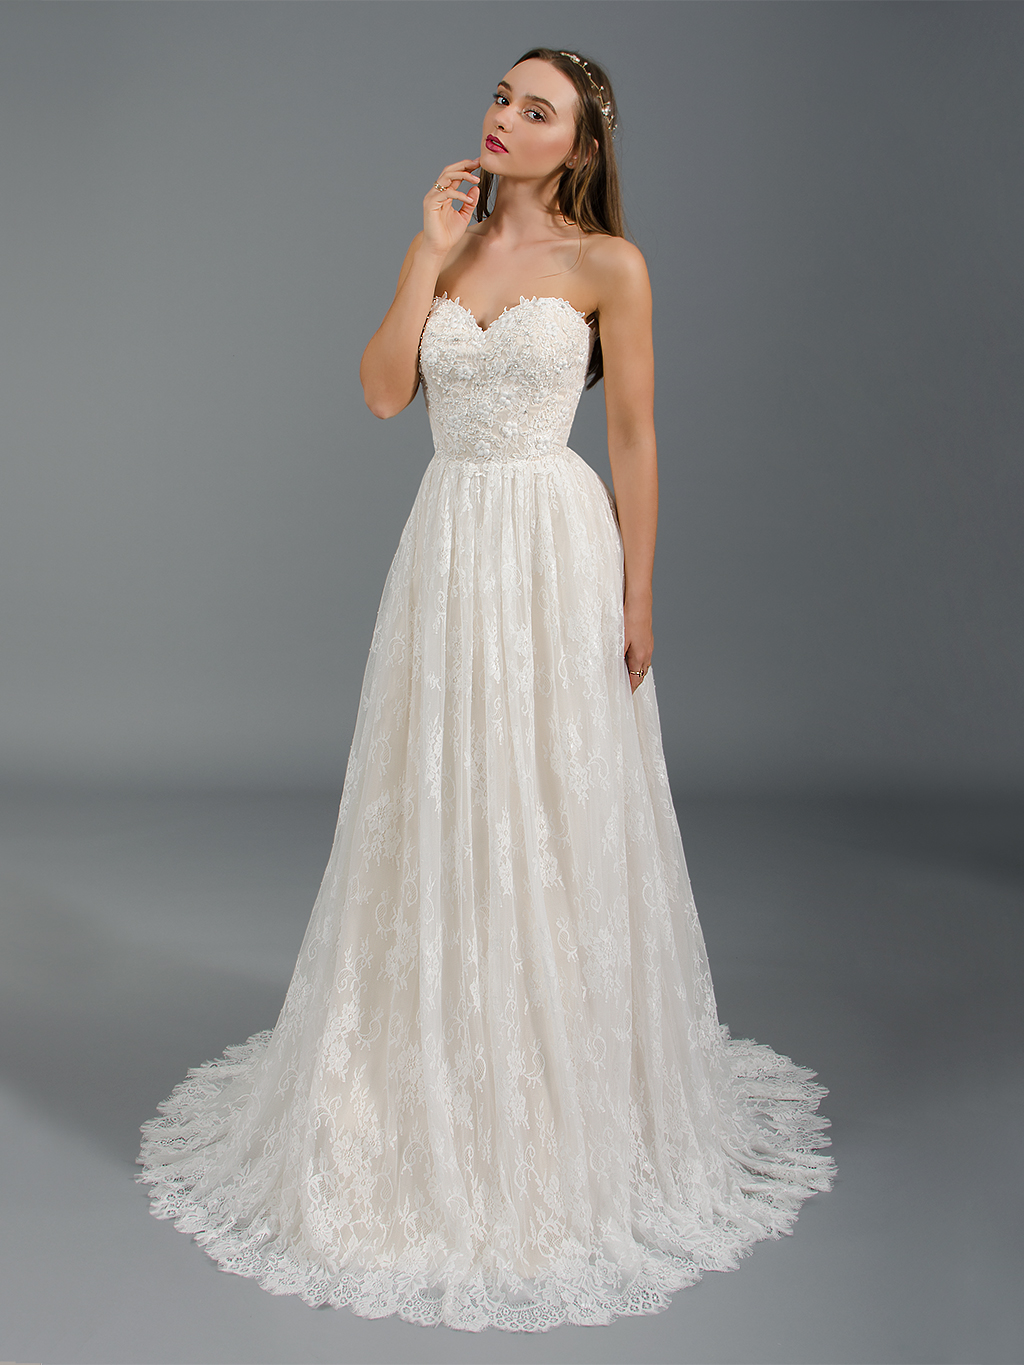 Strapless lace wedding dress with allover lace 4043